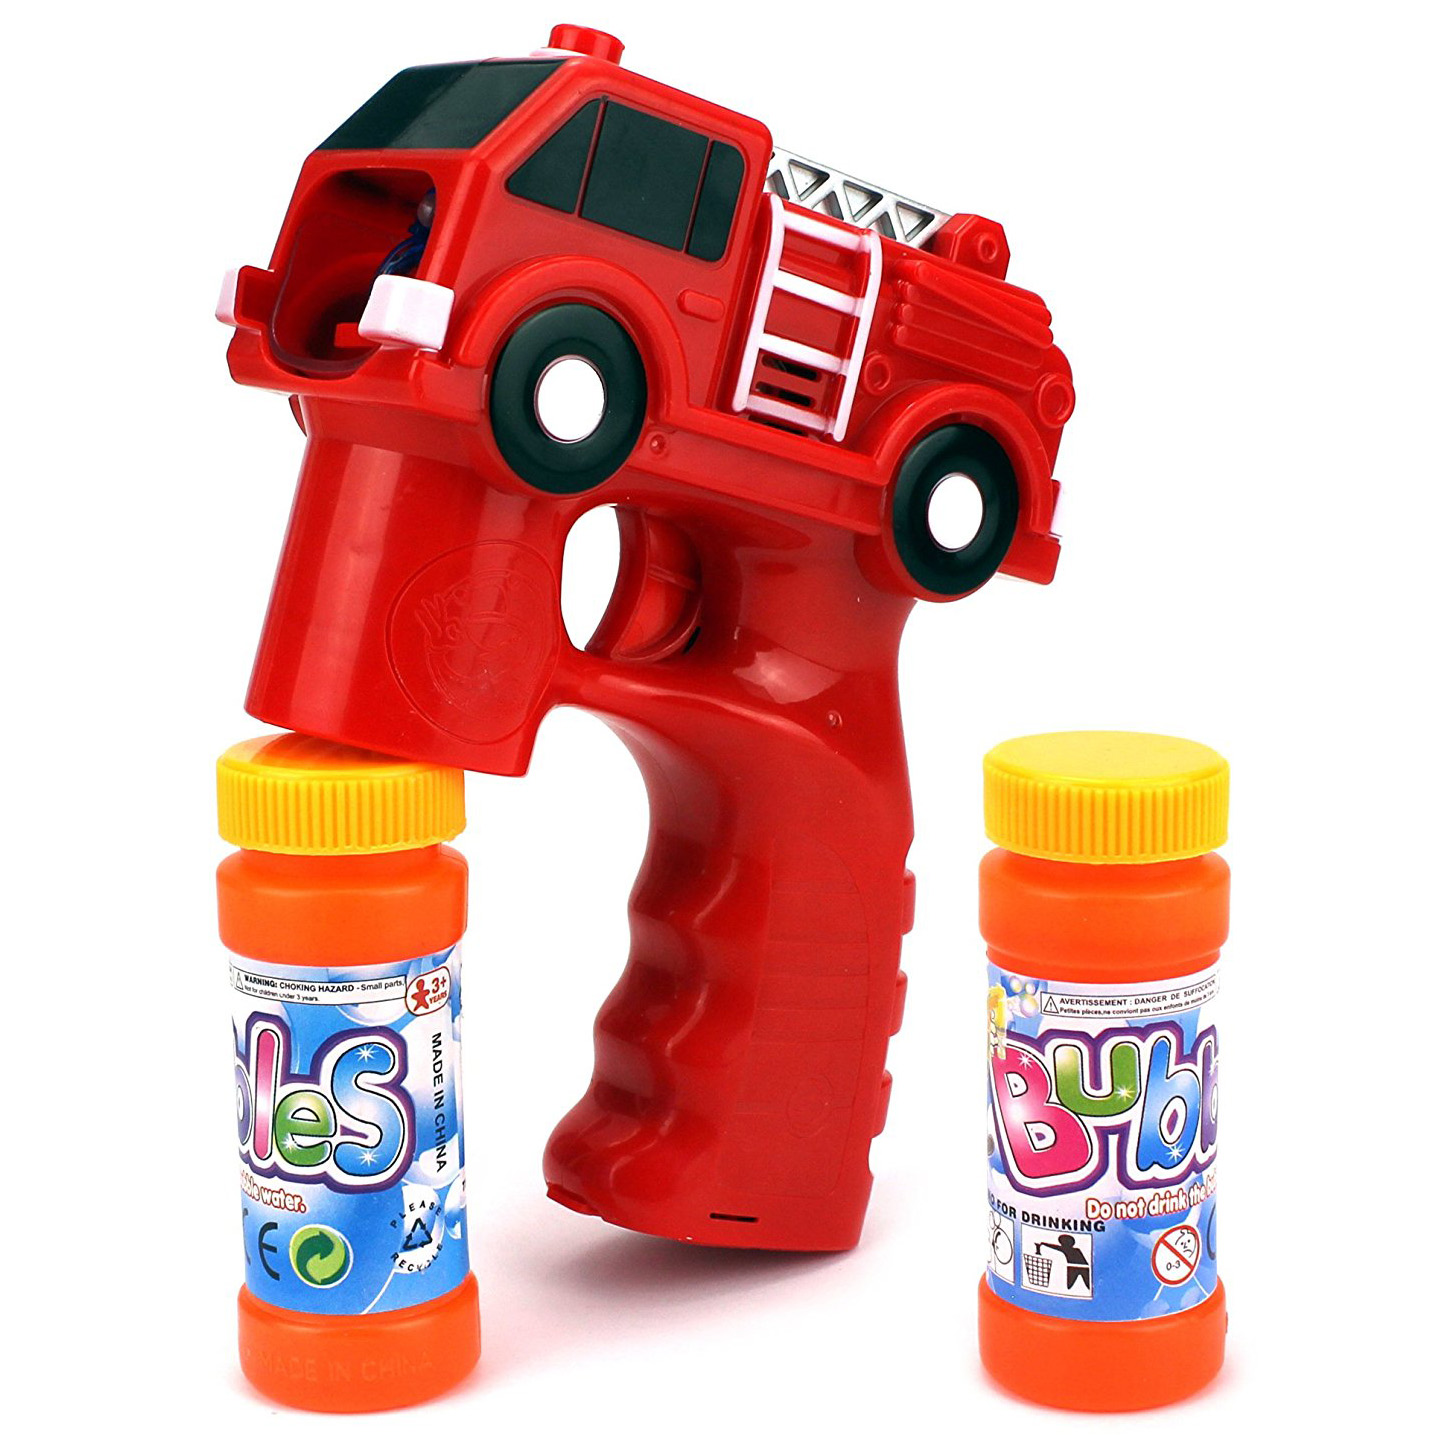 Rescue Fire Truck Battery Operated Toy Bubble Blowing Gun